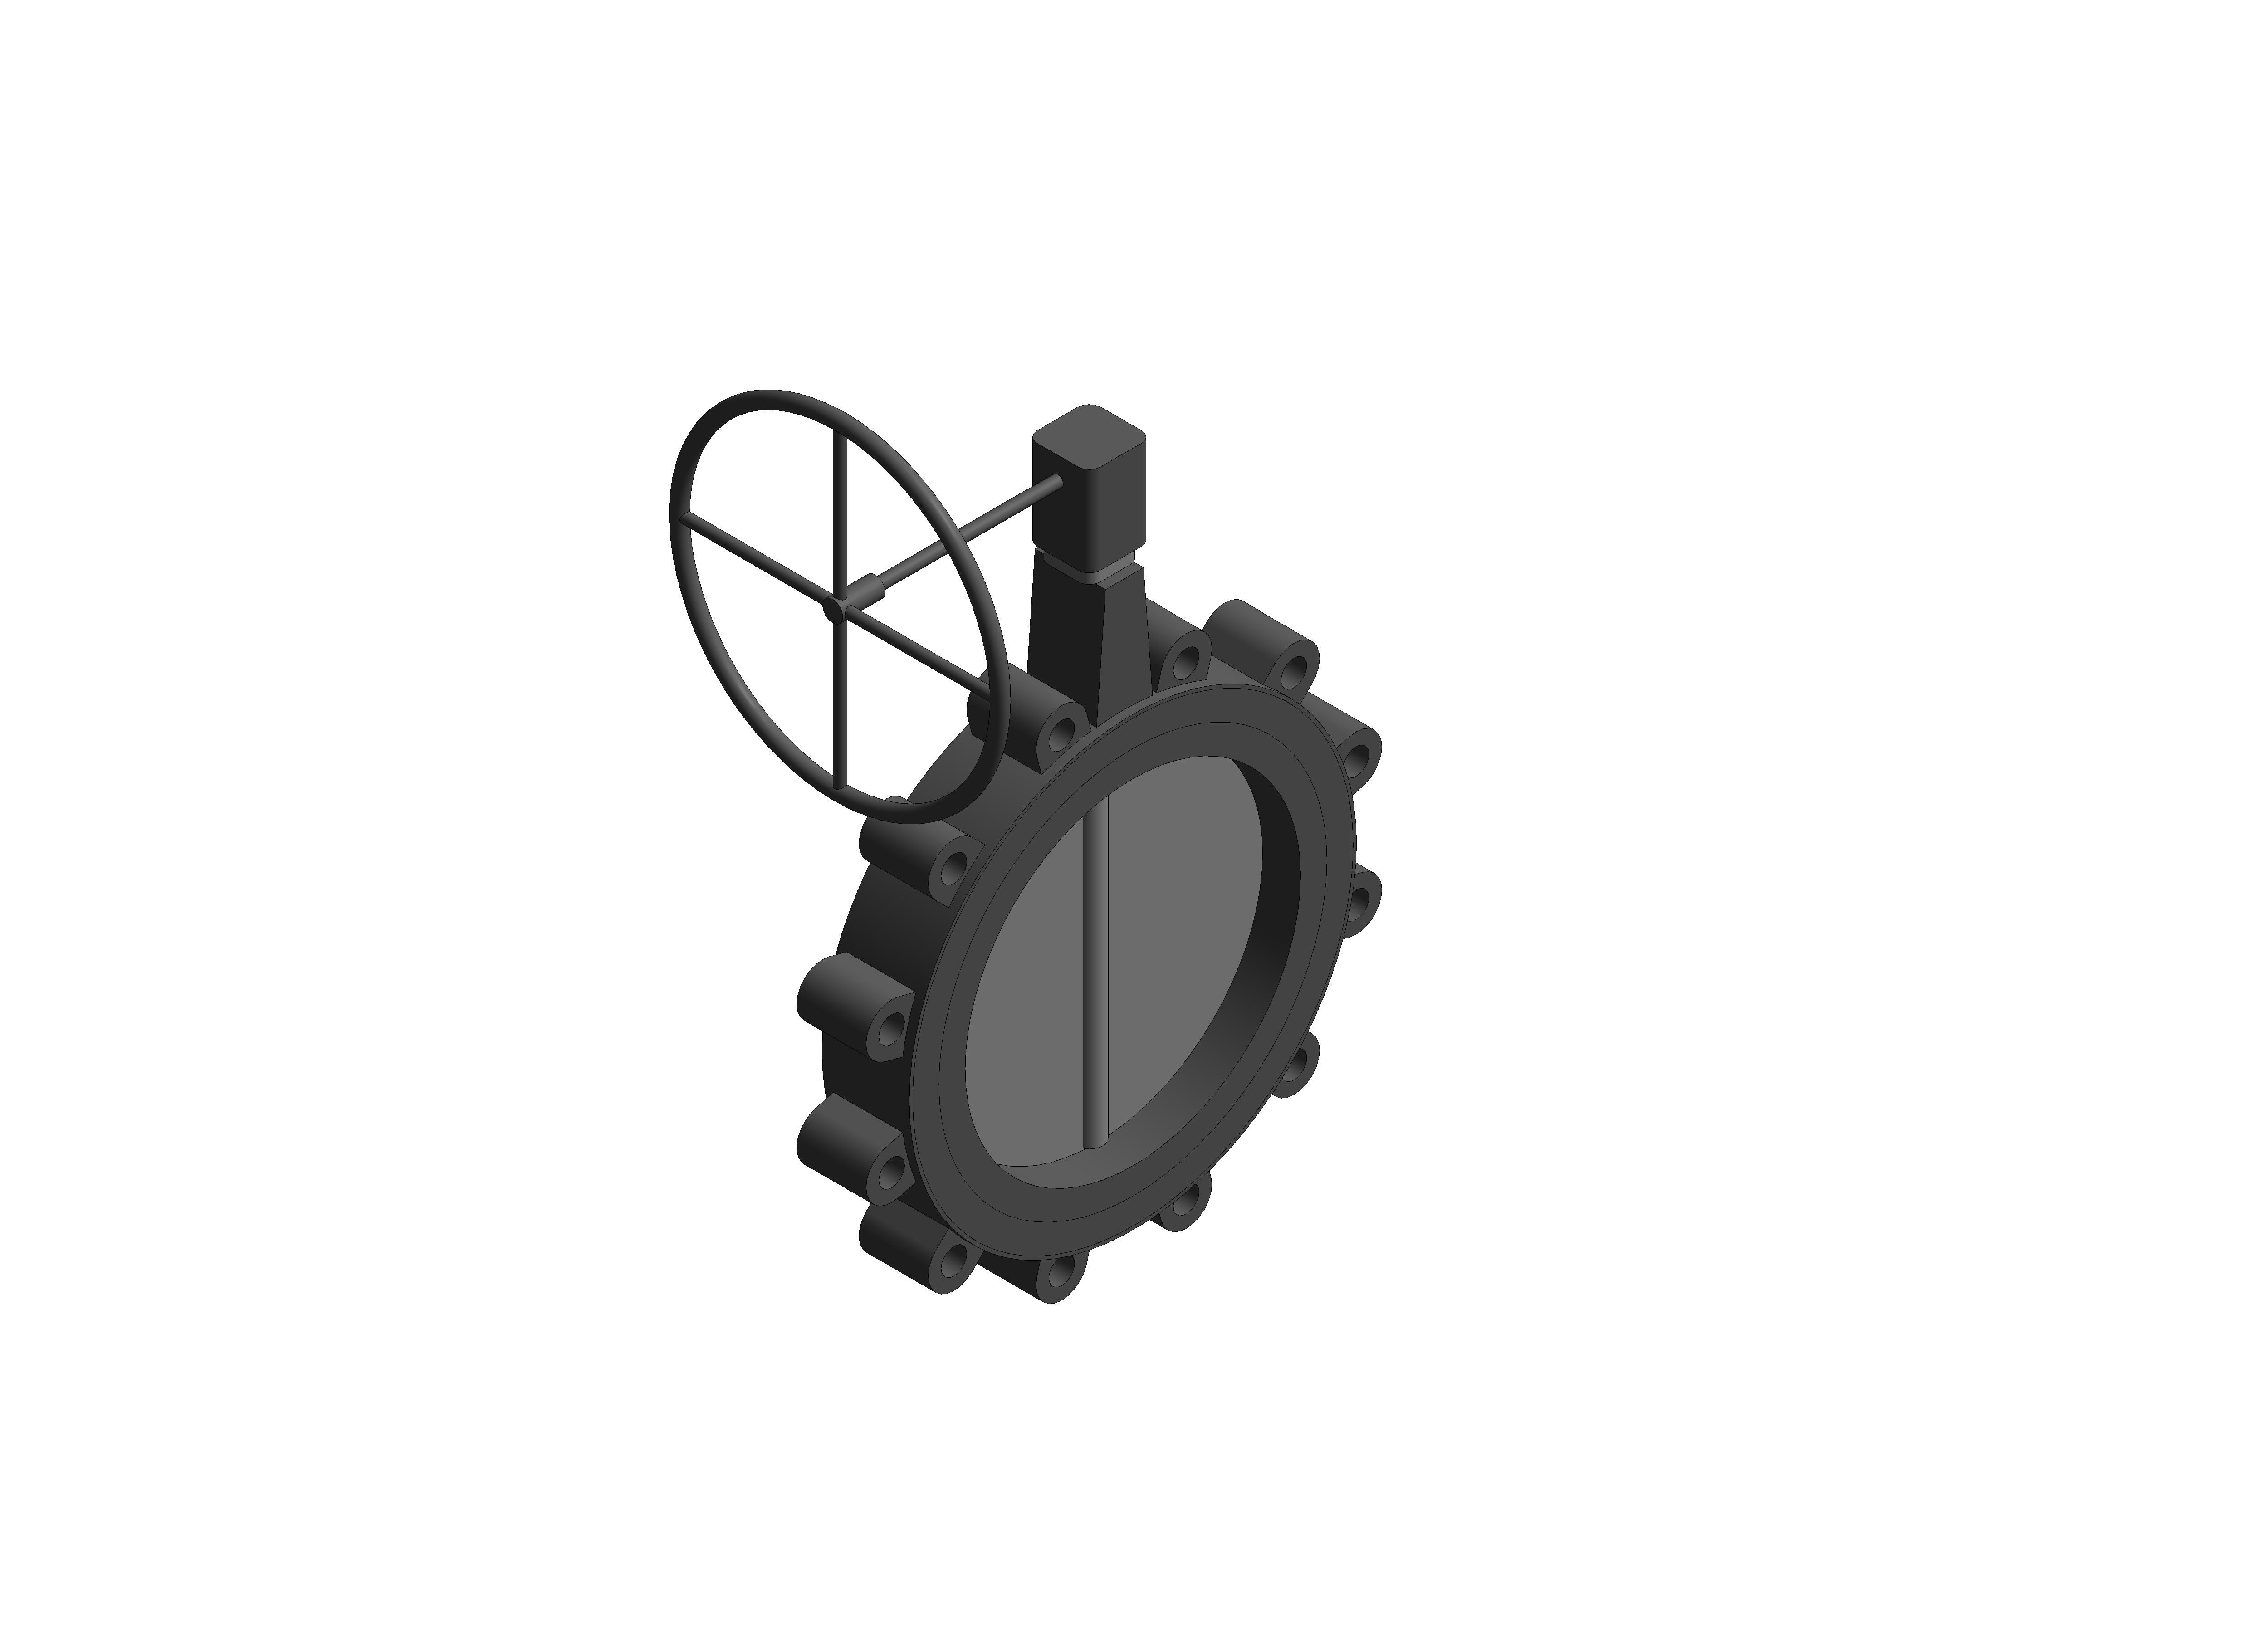 Image of Butterfly Valve Gearbox Operated - FM639